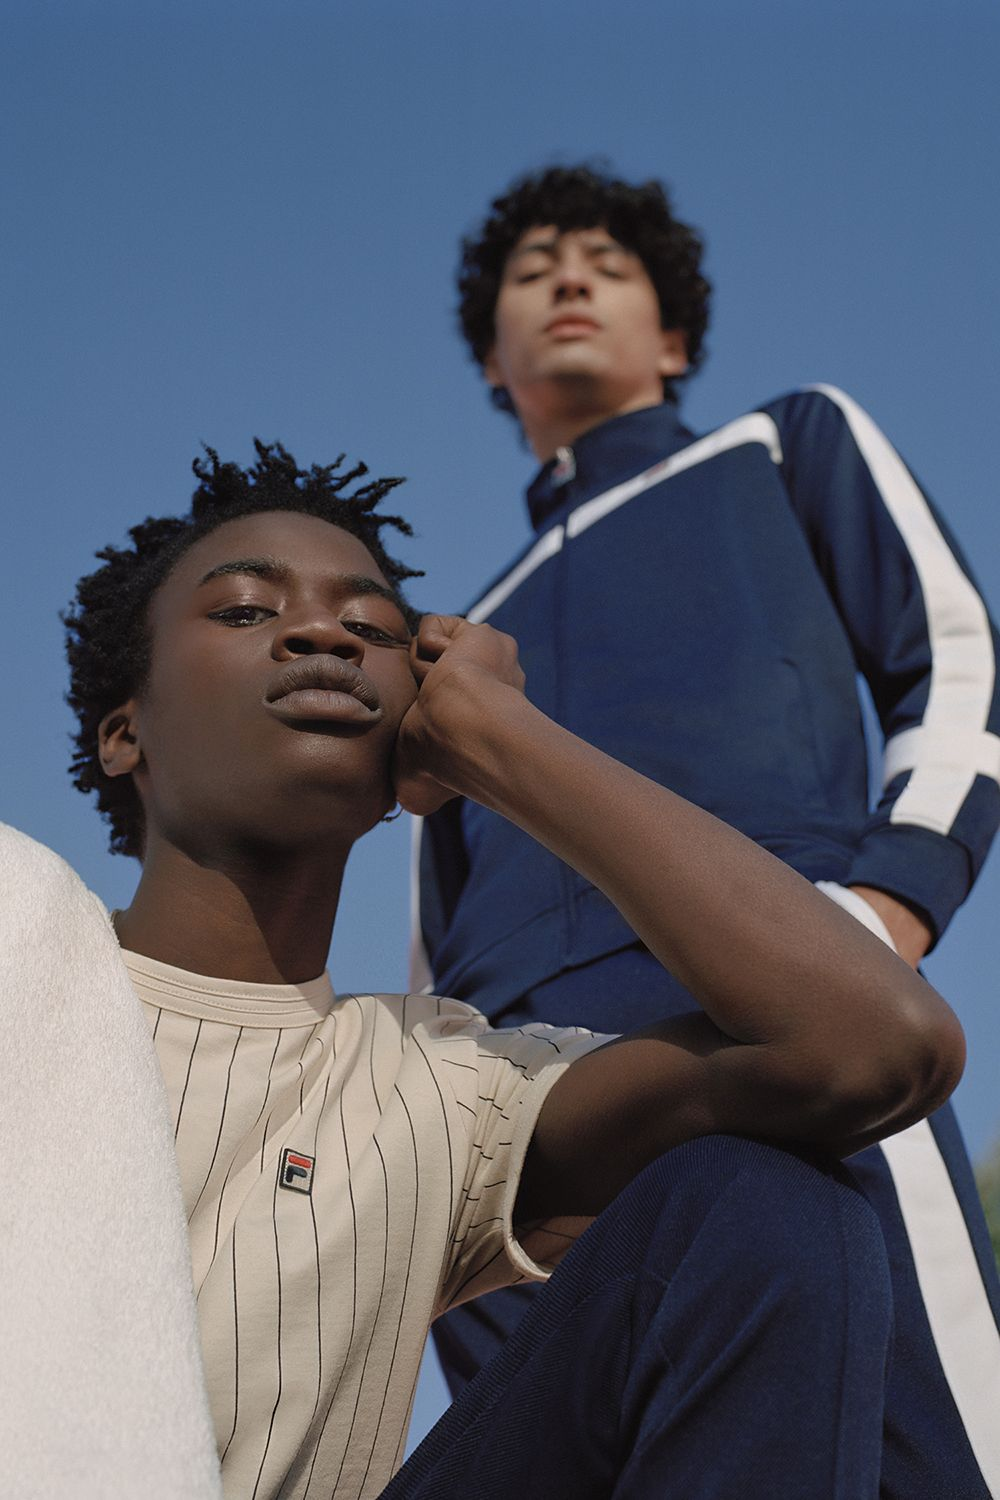 Fila Tracksuit, Spring 2018 Collection